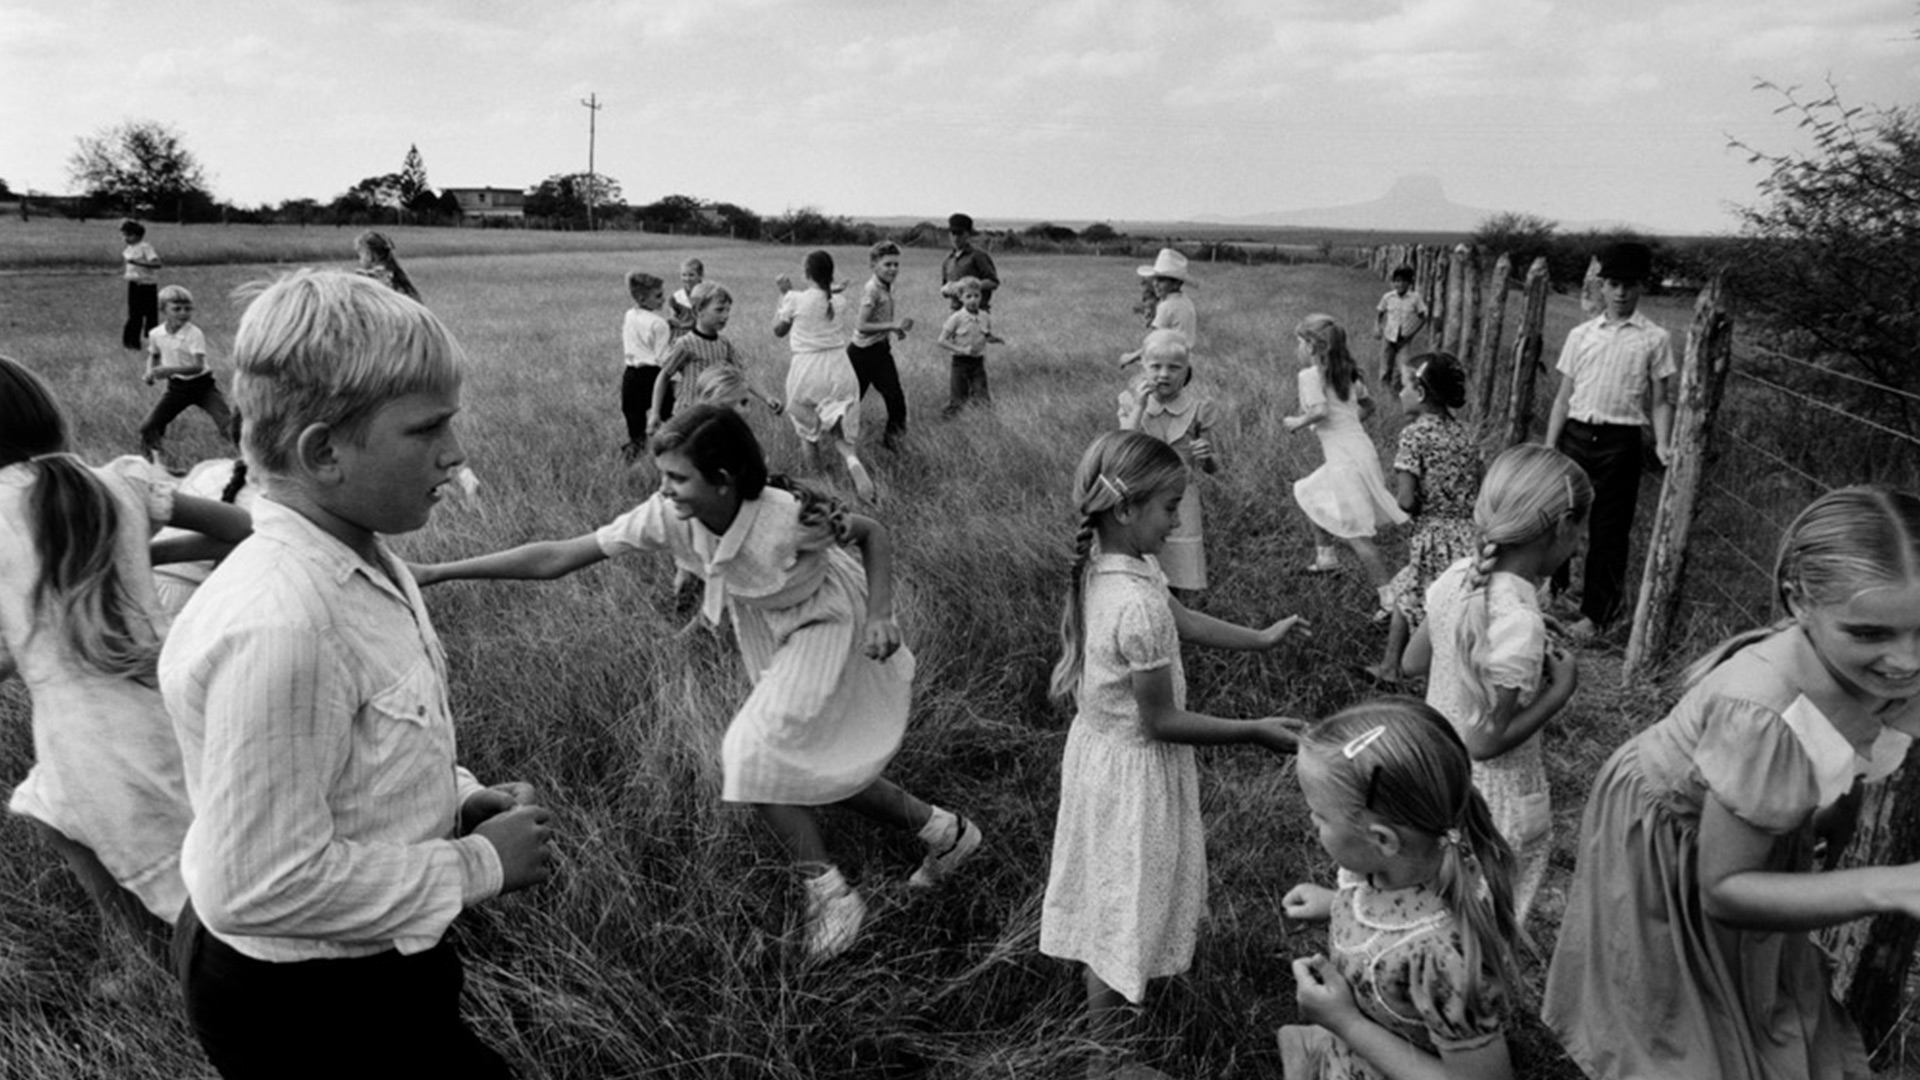 The Larry Towell Show